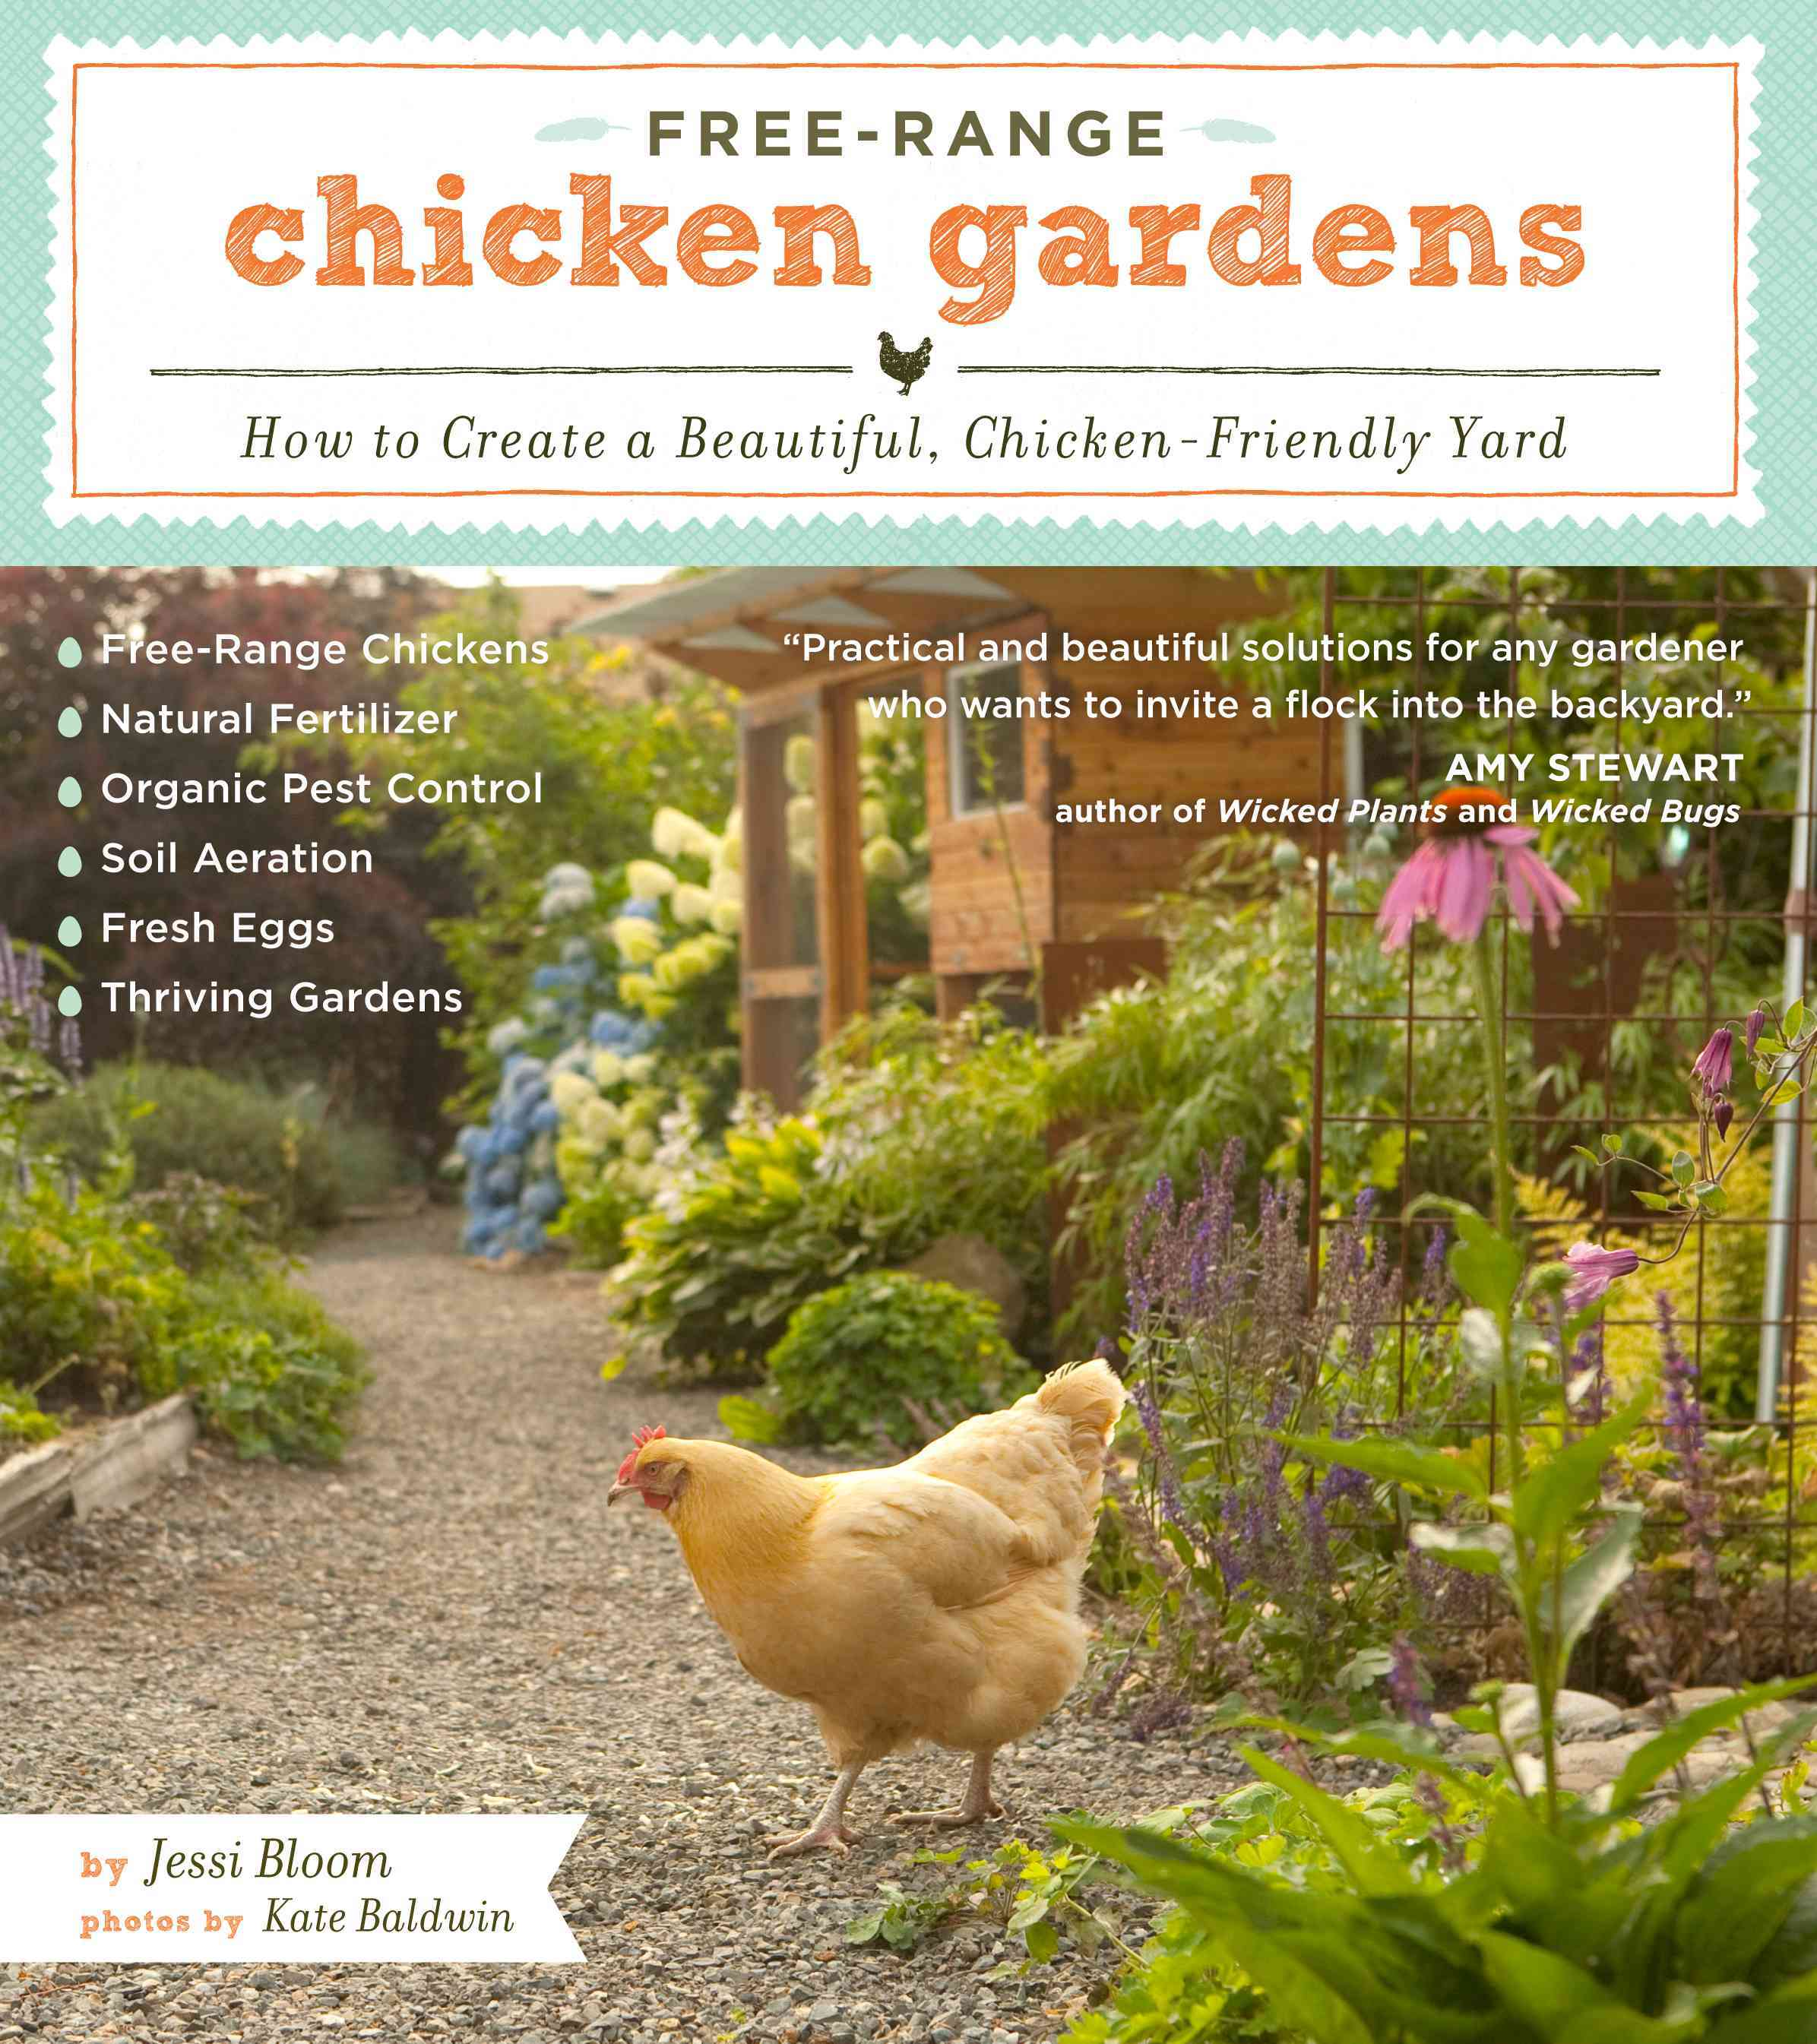 Free-Range Chicken Gardens: How to Create a Beautiful, Chicken-Friendly Yard (Paperback)